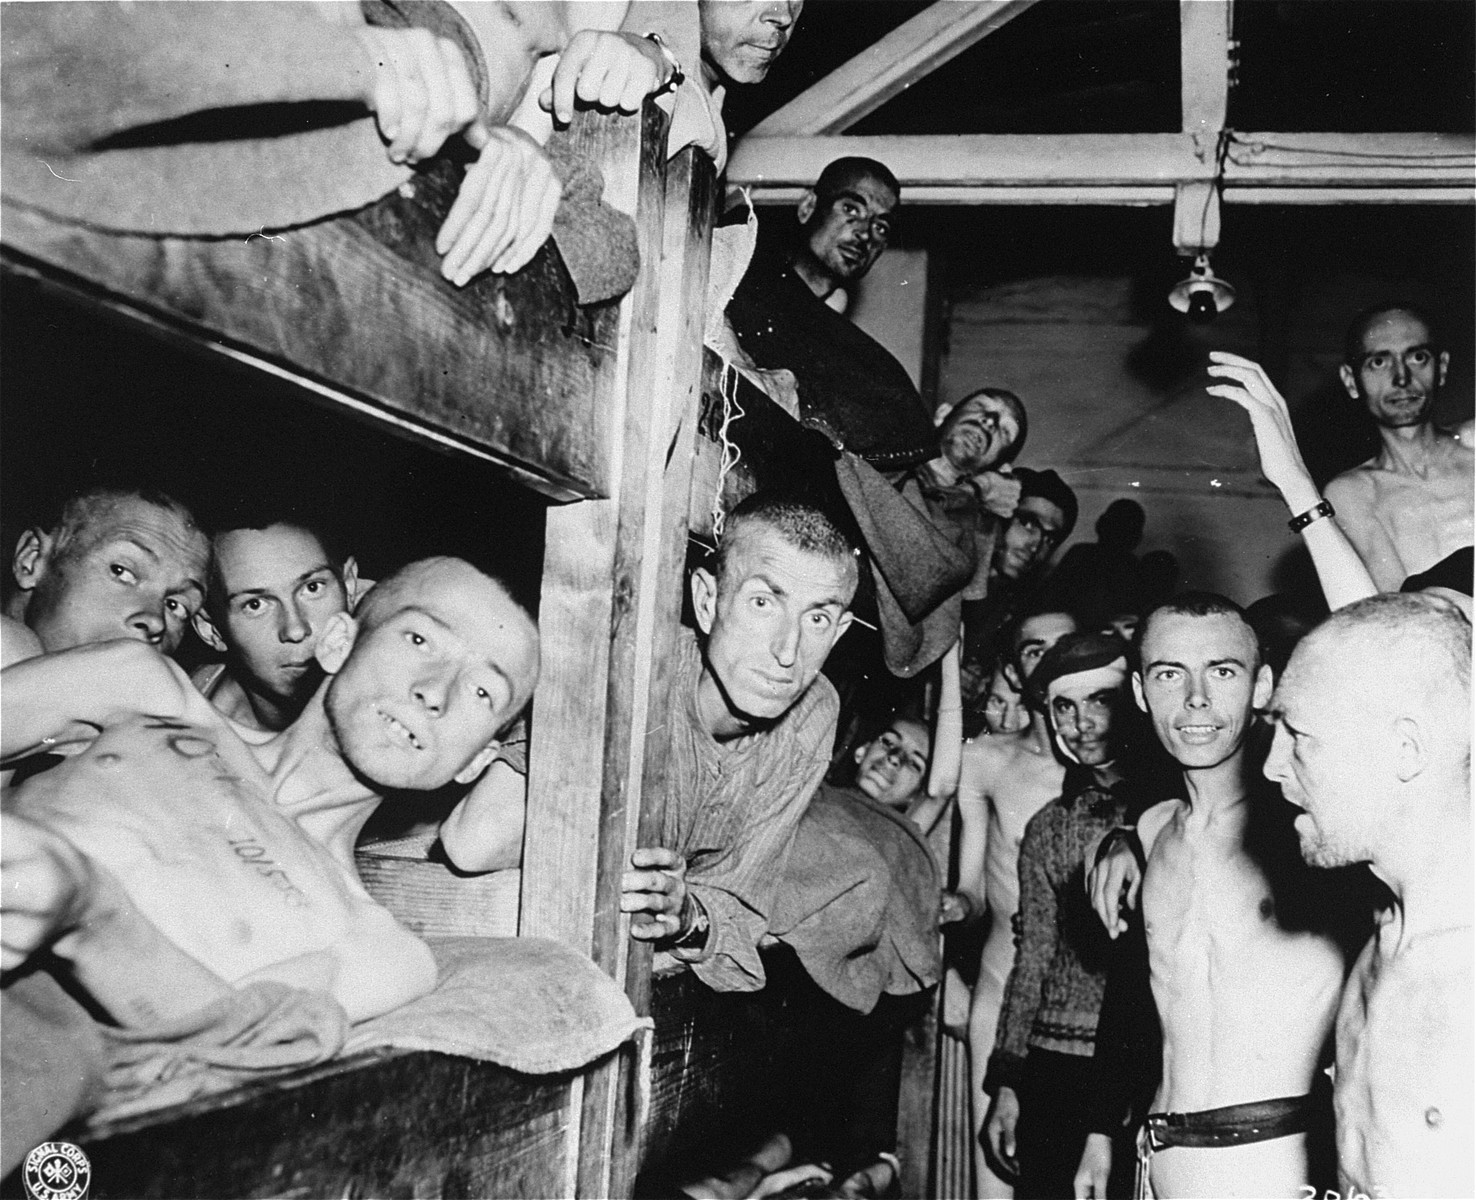 Survivors in a barracks in Mauthausen.  Note the tattoo on the chest of the man in the left foreground.